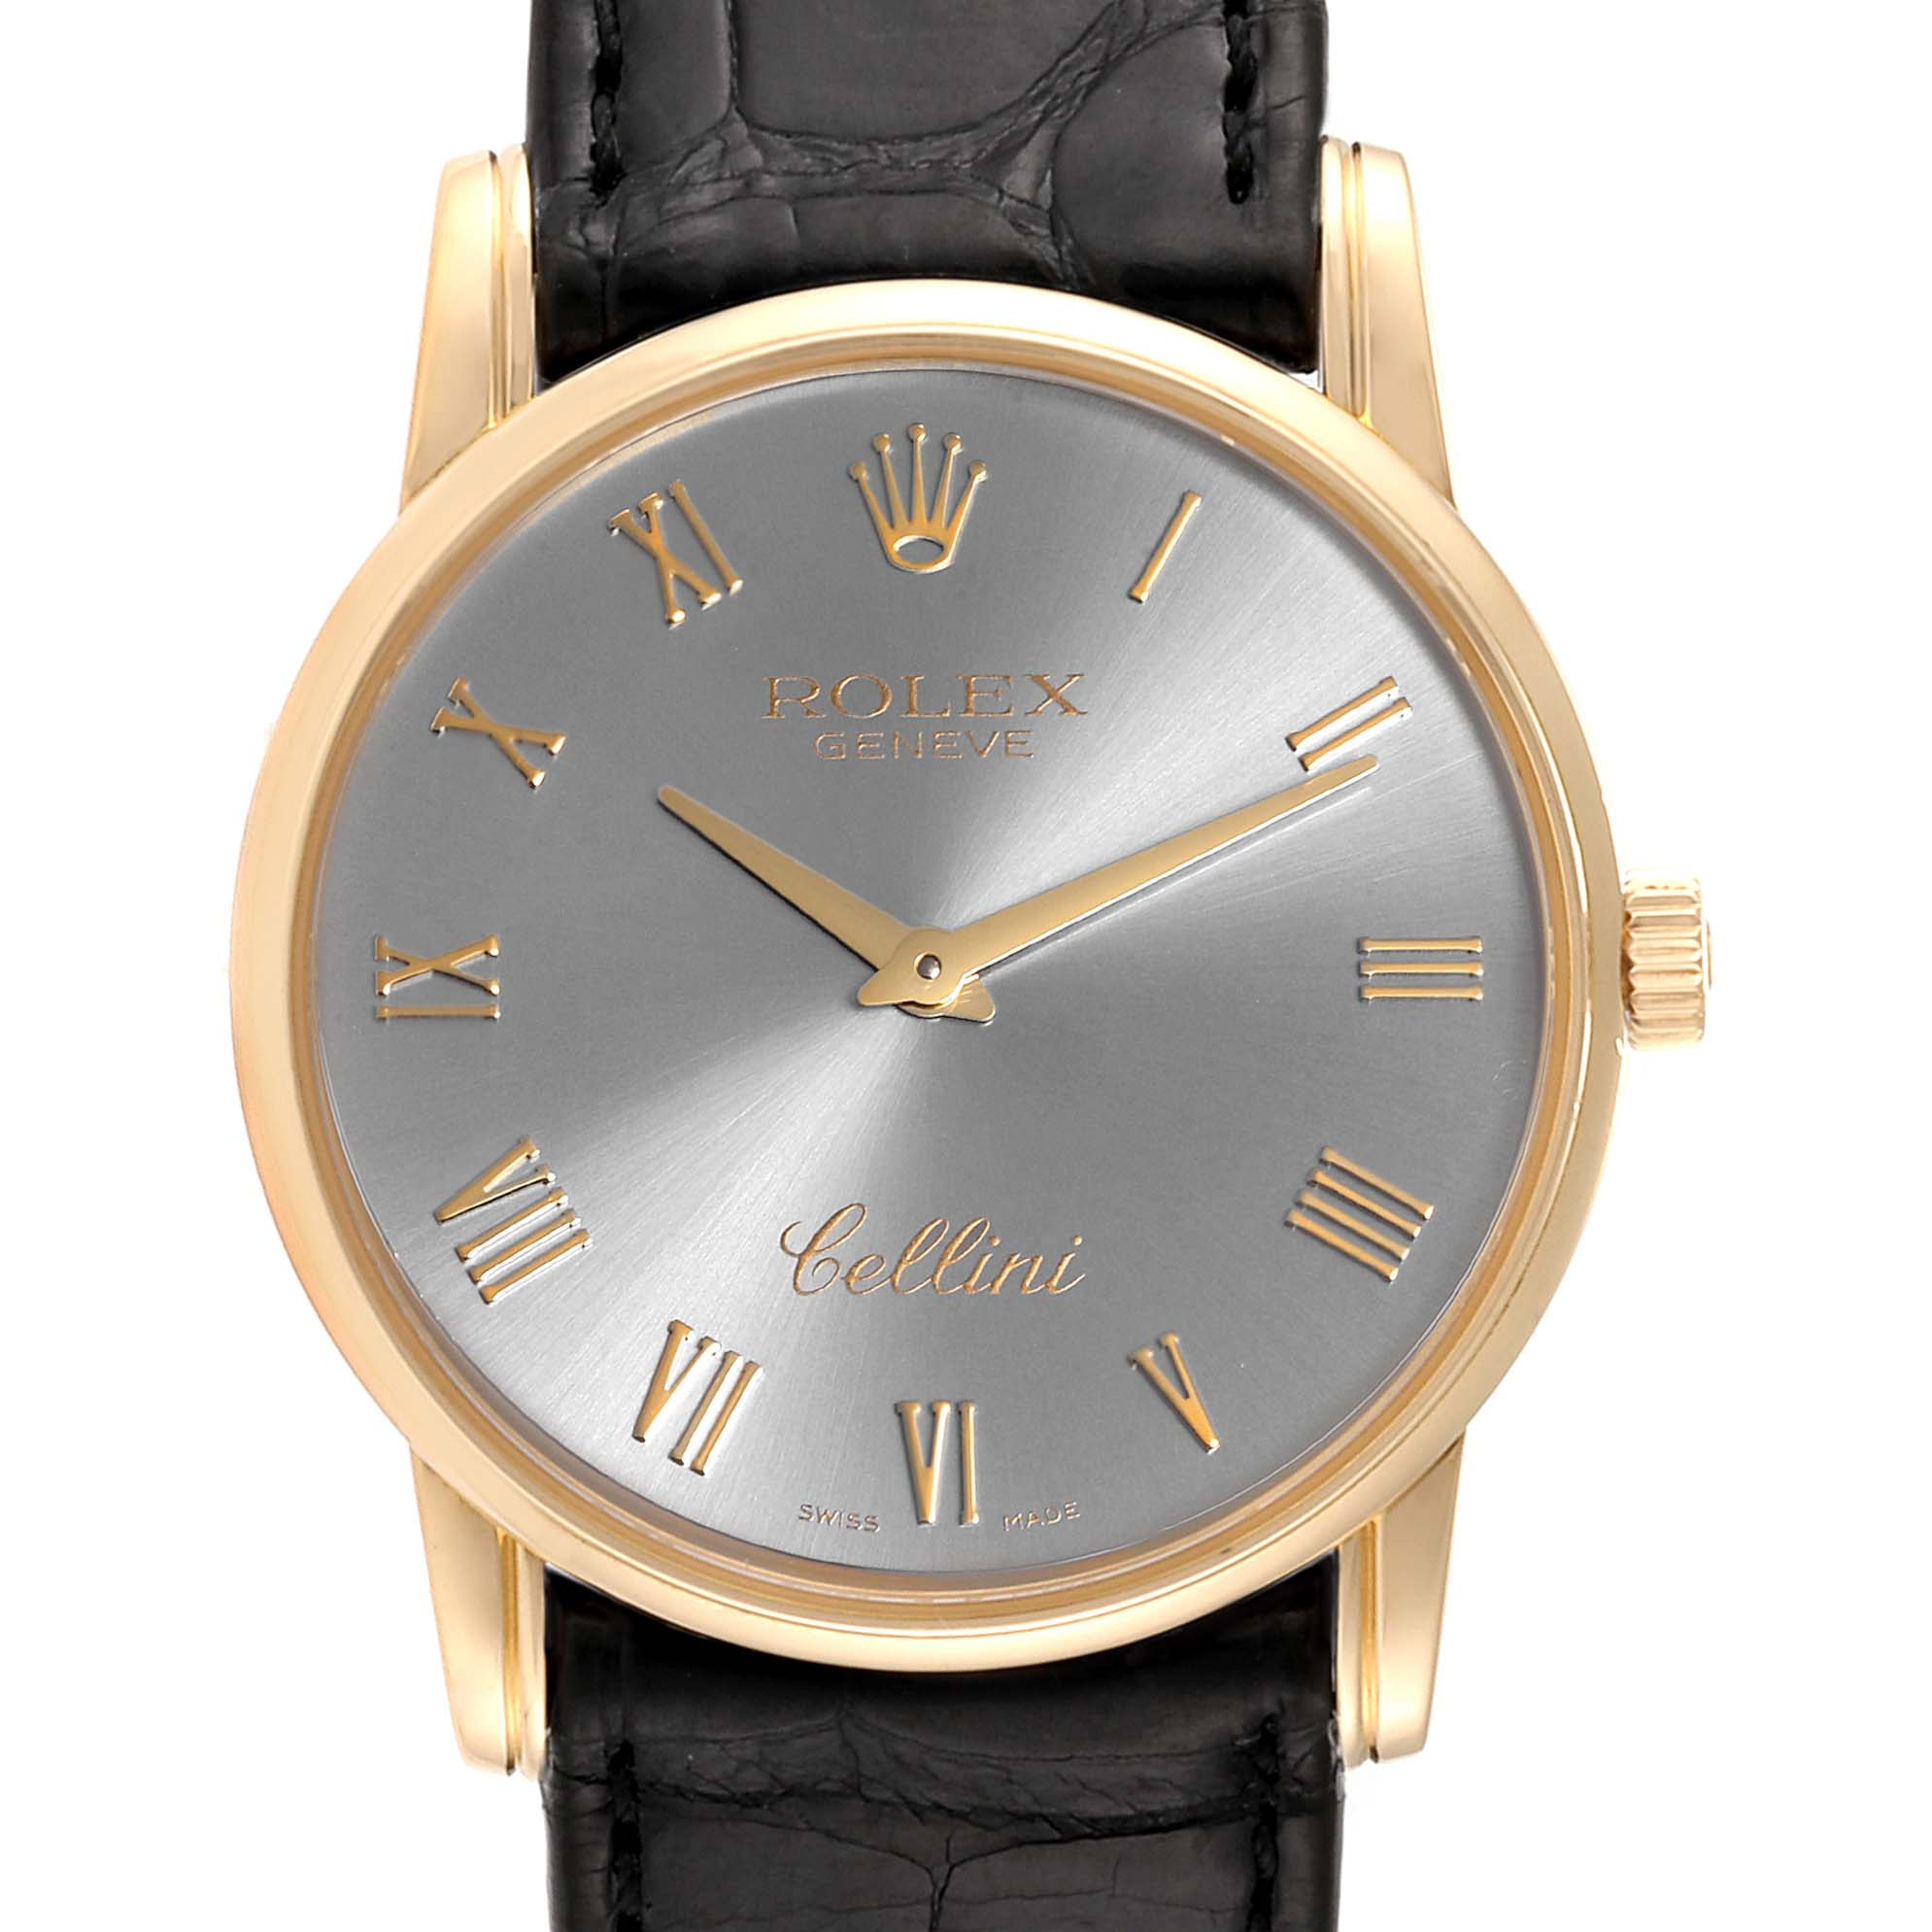 Rolex Cellini Classic Slate Dial 18k White Gold Mens Watch 5116 SwissWatchExpo